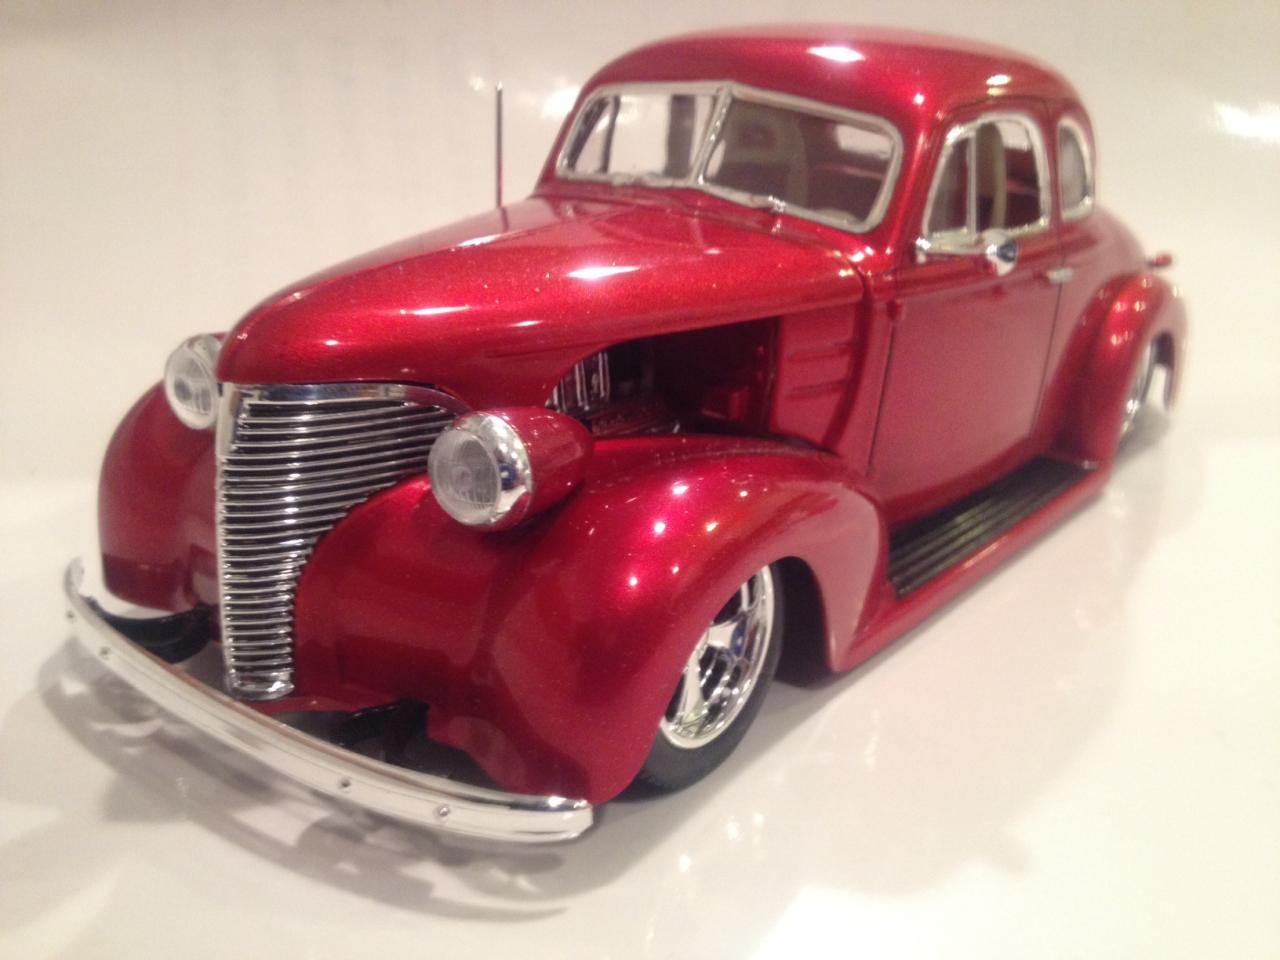 Used Cars Charleston Sc >> 39 Chevy coupe - Under Glass - Model Cars Magazine Forum